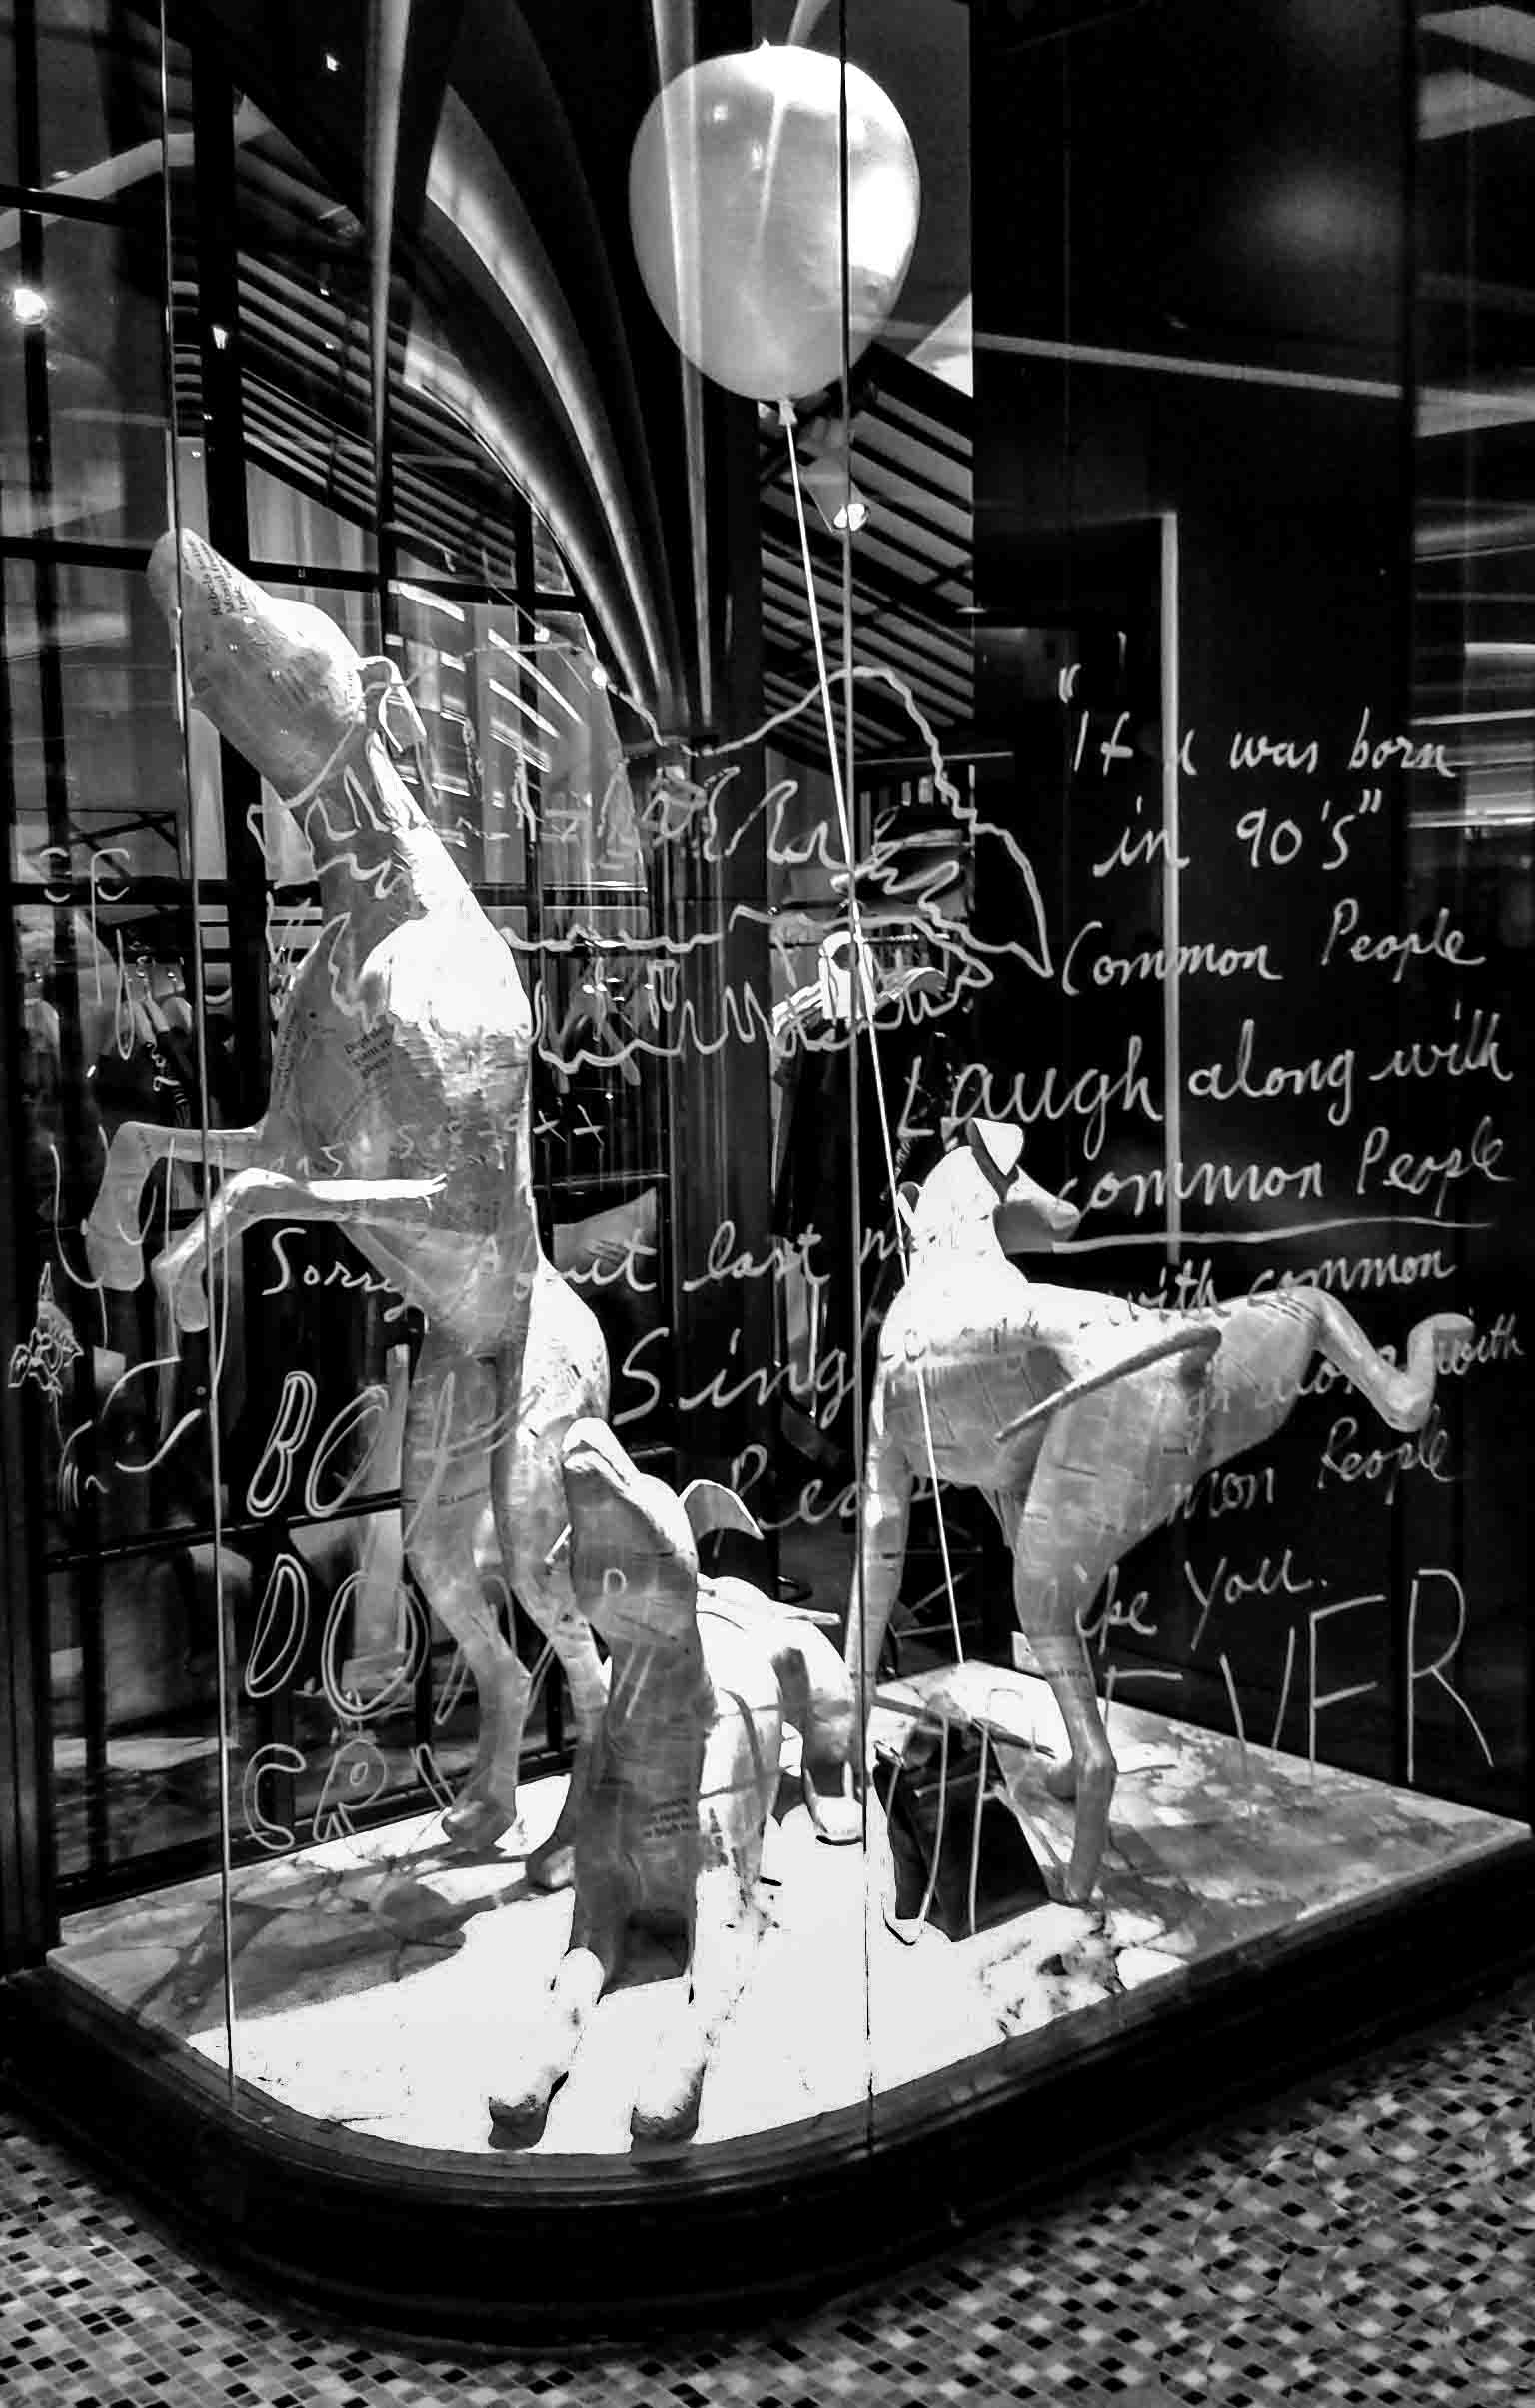 The image shows a humorous sculpture of three dogs and a balloon.  The sculpture stands on a low plinth in a shop window. On the black background wall words and messages are written.